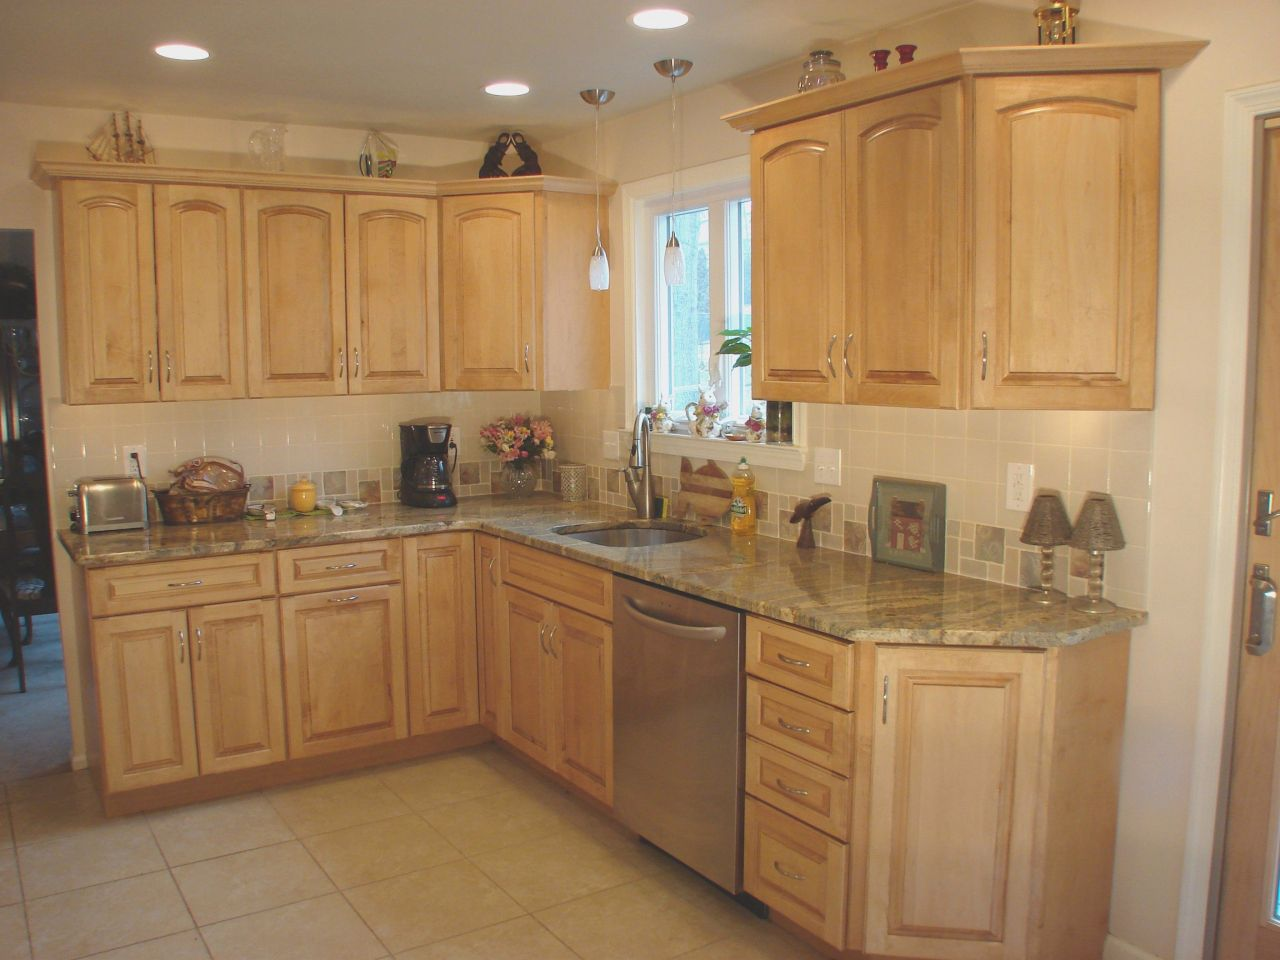 Luxury Replacement Kitchen Cabinet Shelves Replacement Kitchen Aire Ventilator Model Ka240 Replacement Kitchen Worktops Fitted Replacement Kitchen Equipment A Kitchen Cabinet Styles Kitchen Cabinet Shelves Beautiful Kitchen Cabinets